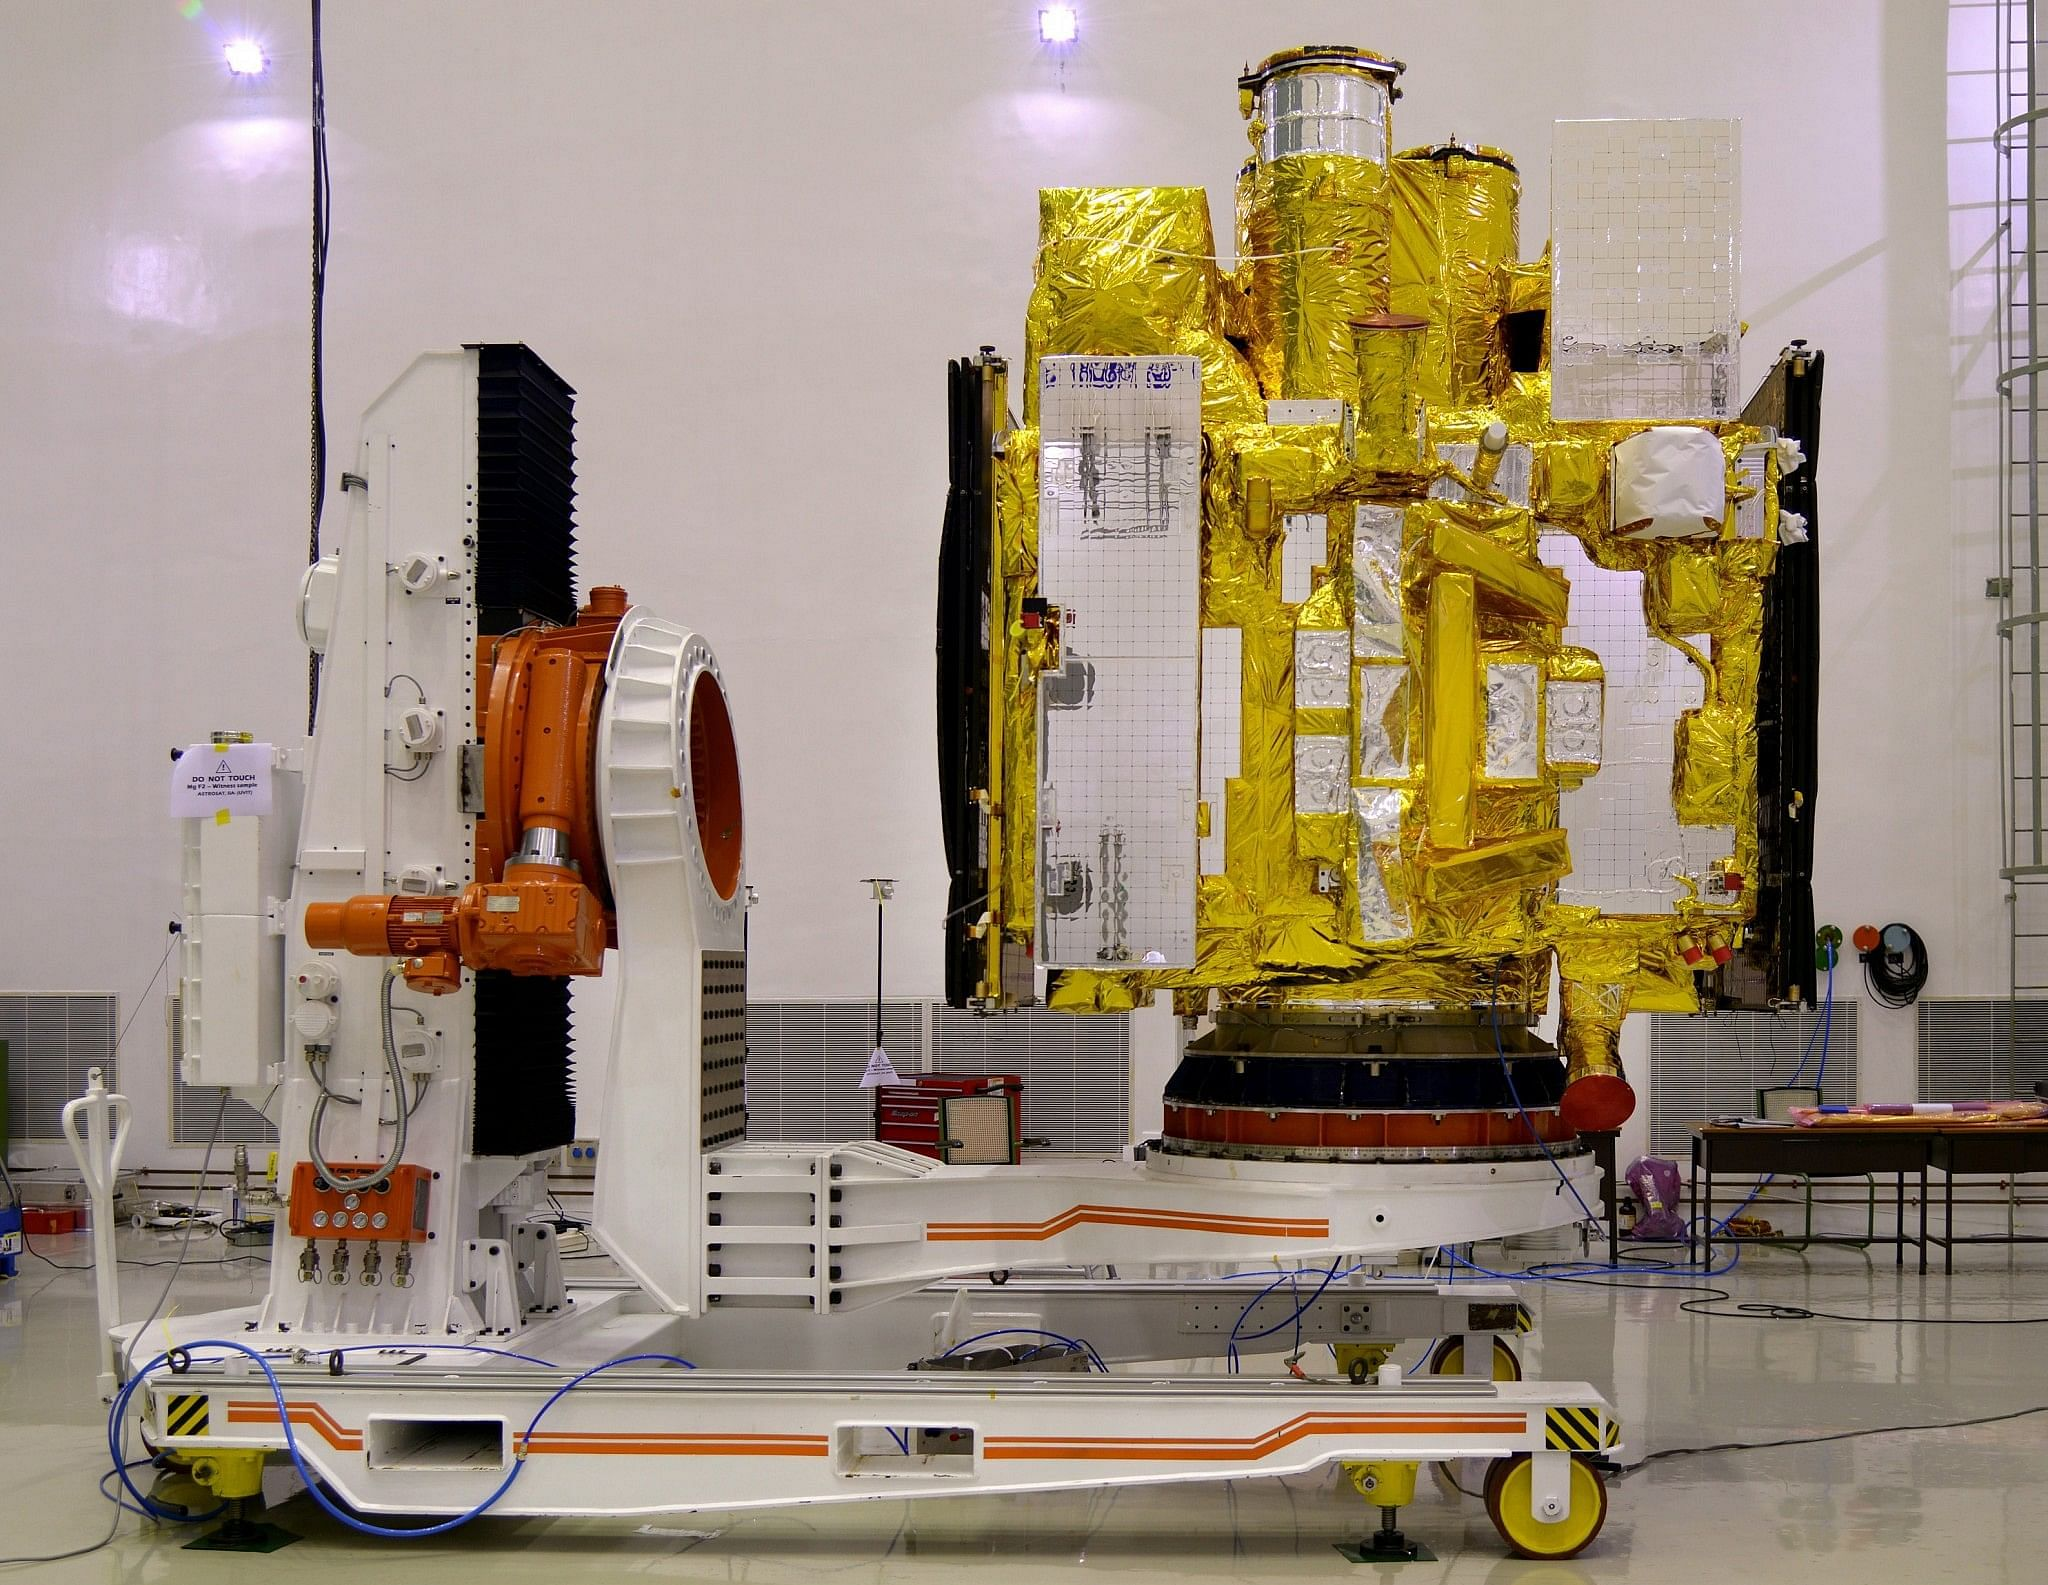 ASTROSAT in clean room before its integration with PSLV-C30